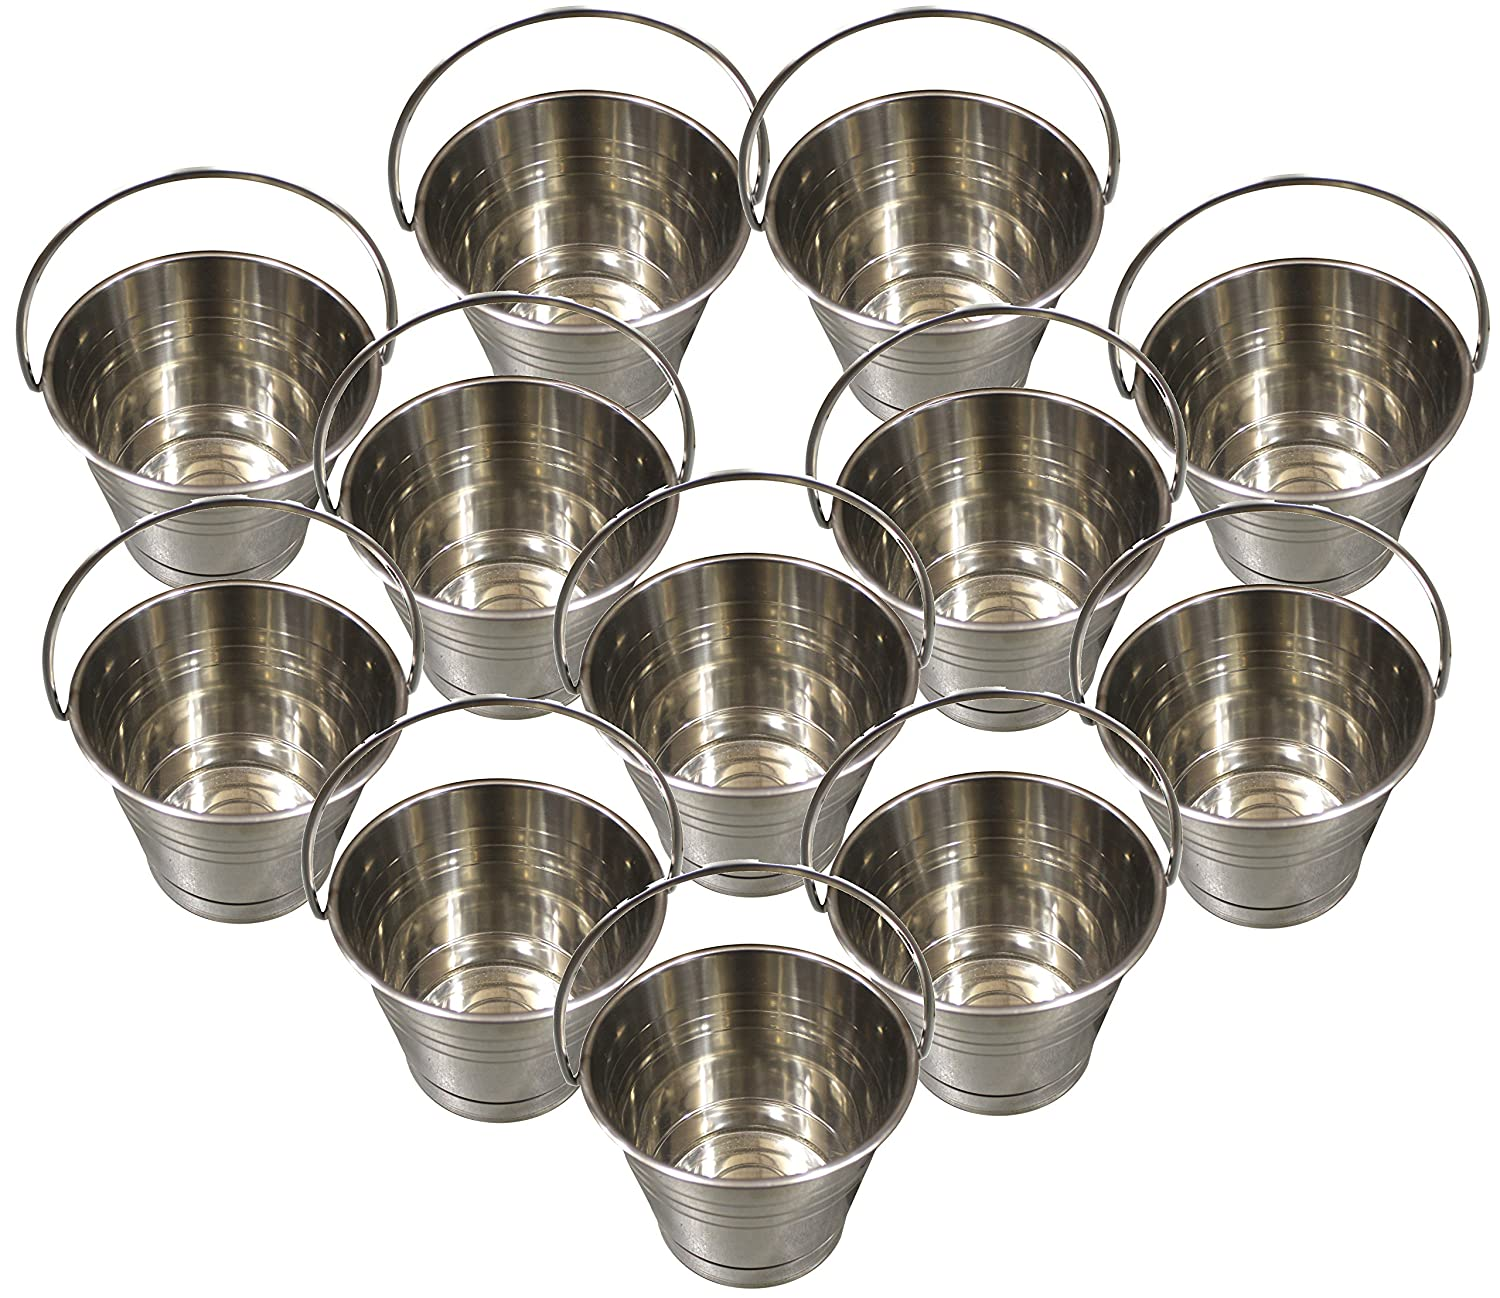 Stainless Steel Buckets/Pails, 13cm Tall, Holds 6+ Cups of Water Each [12pcs] NWI